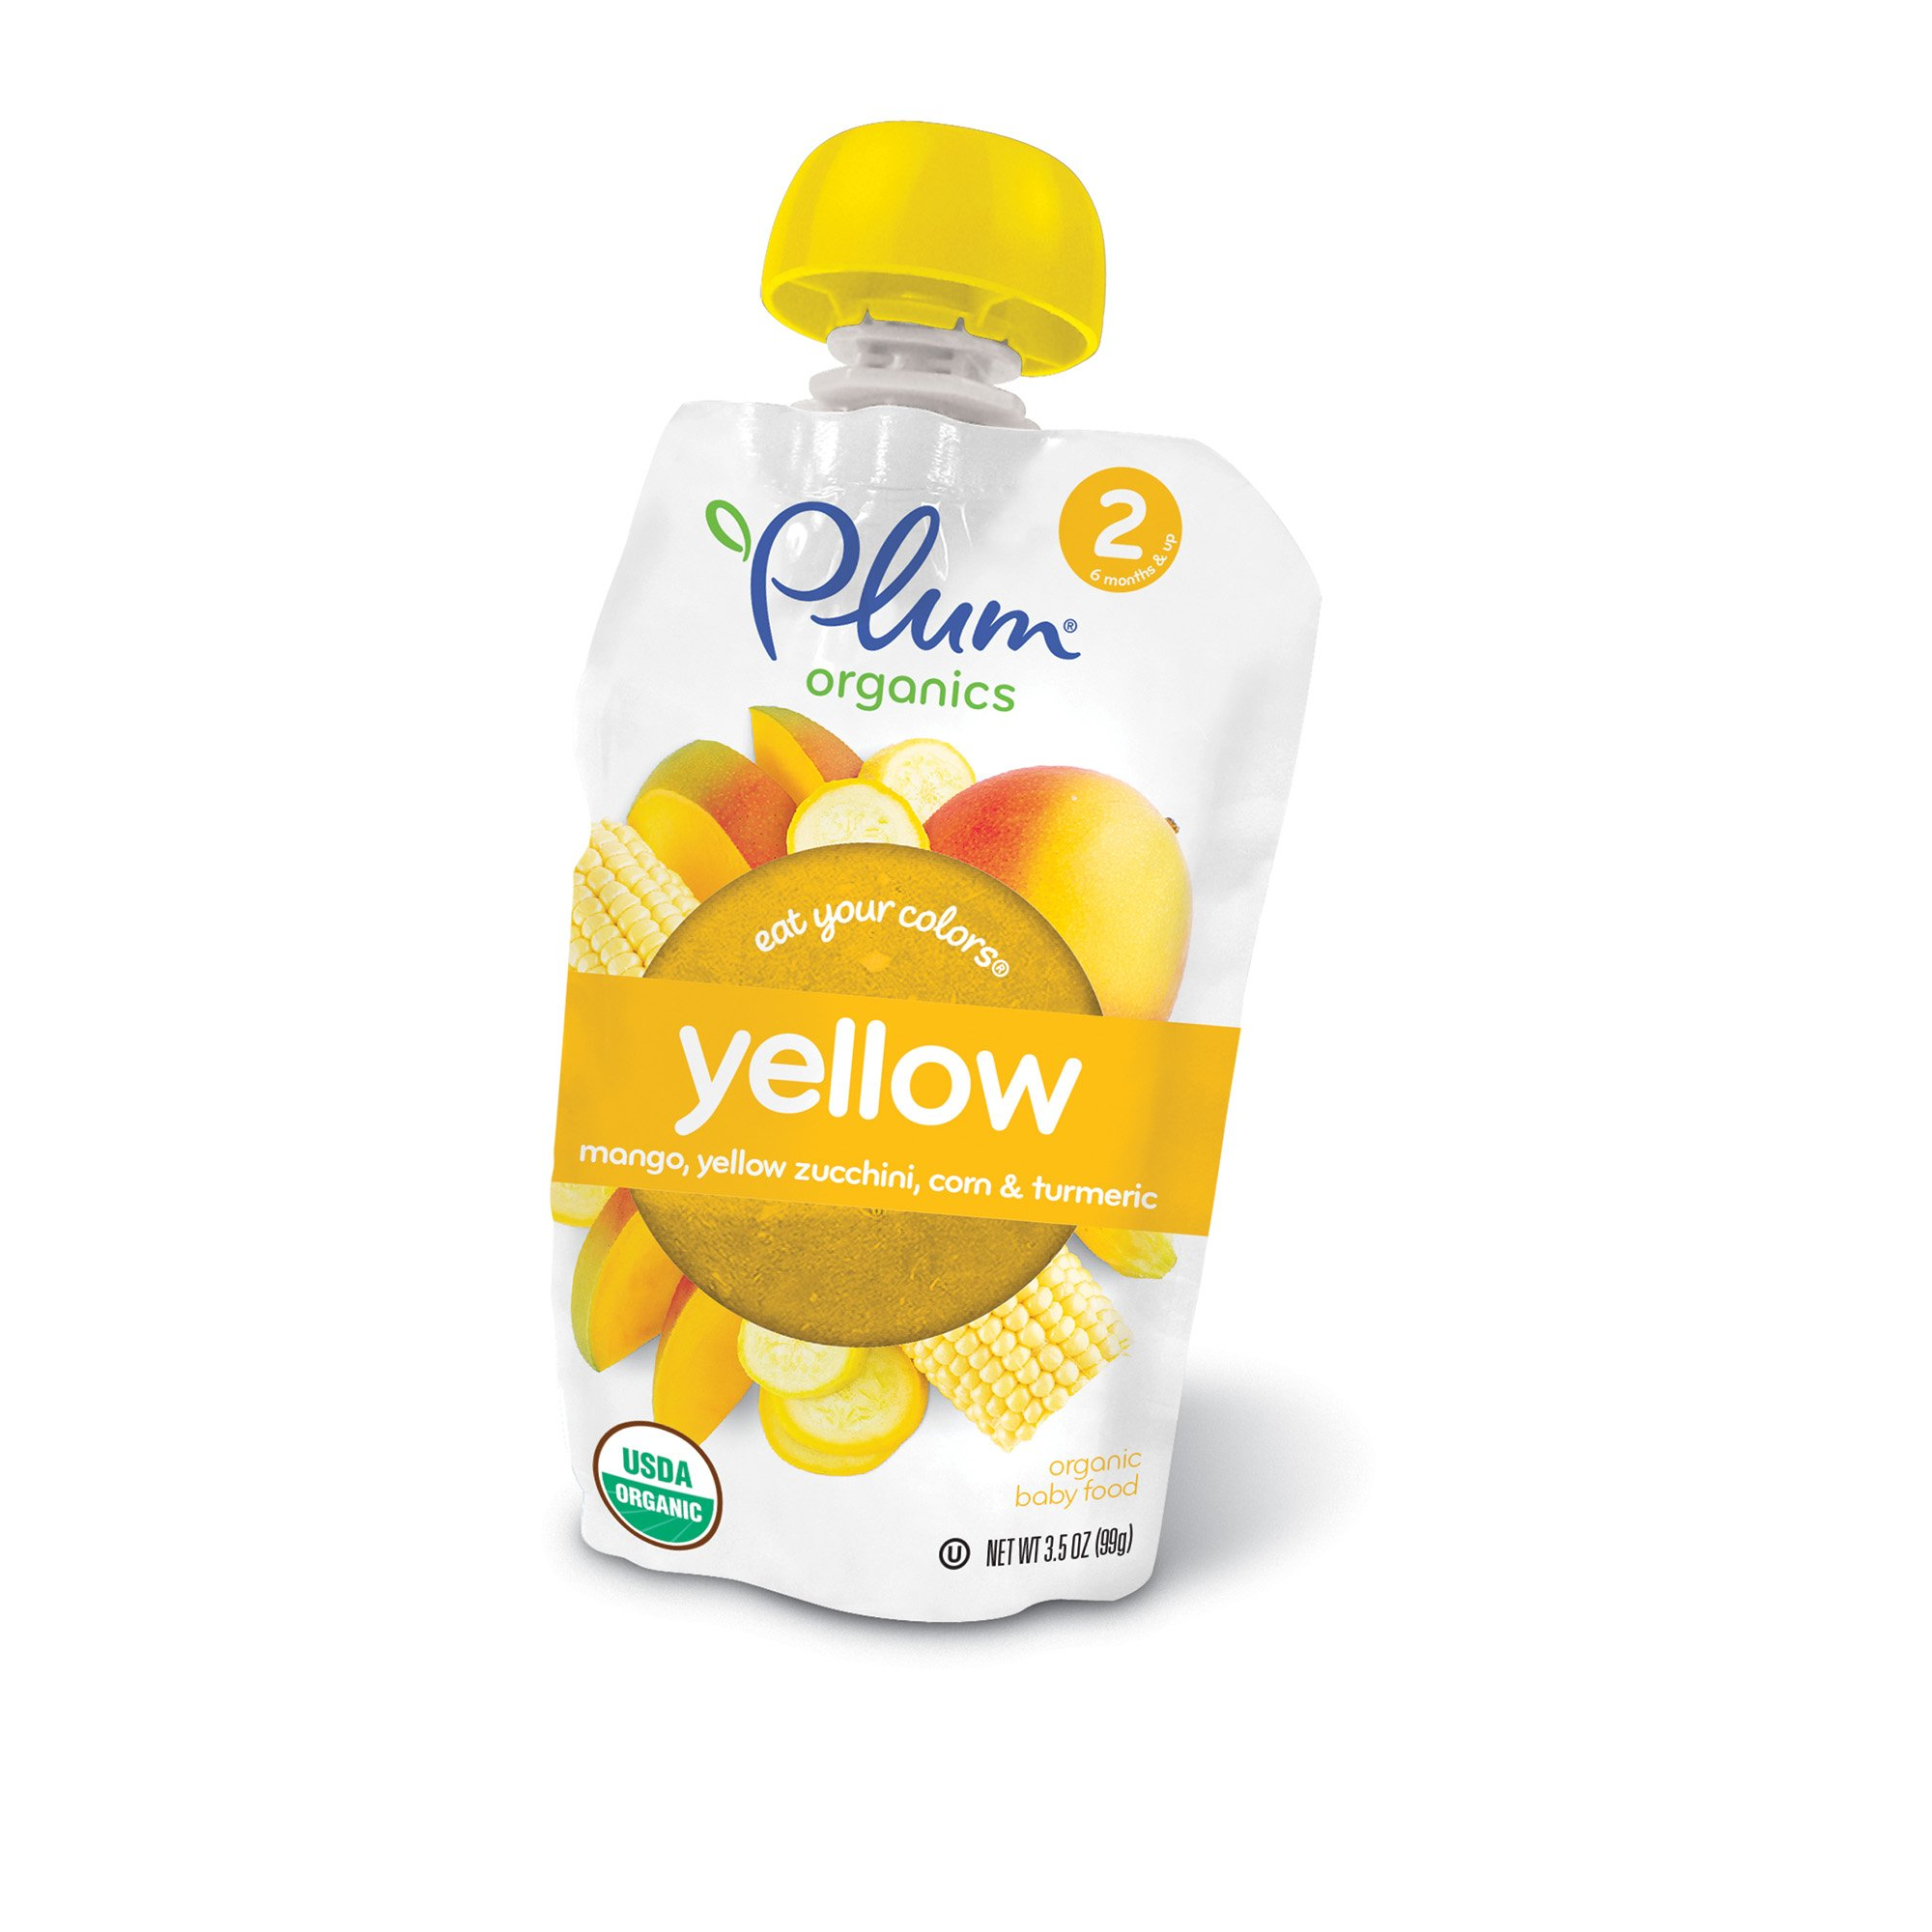 Plum Organics Stage 2 Eat Your Colors Yellow, Organic Baby Food, Mango, Yellow Zucchini, Corn & Turmeric, 3.5 oz by Plum Organics